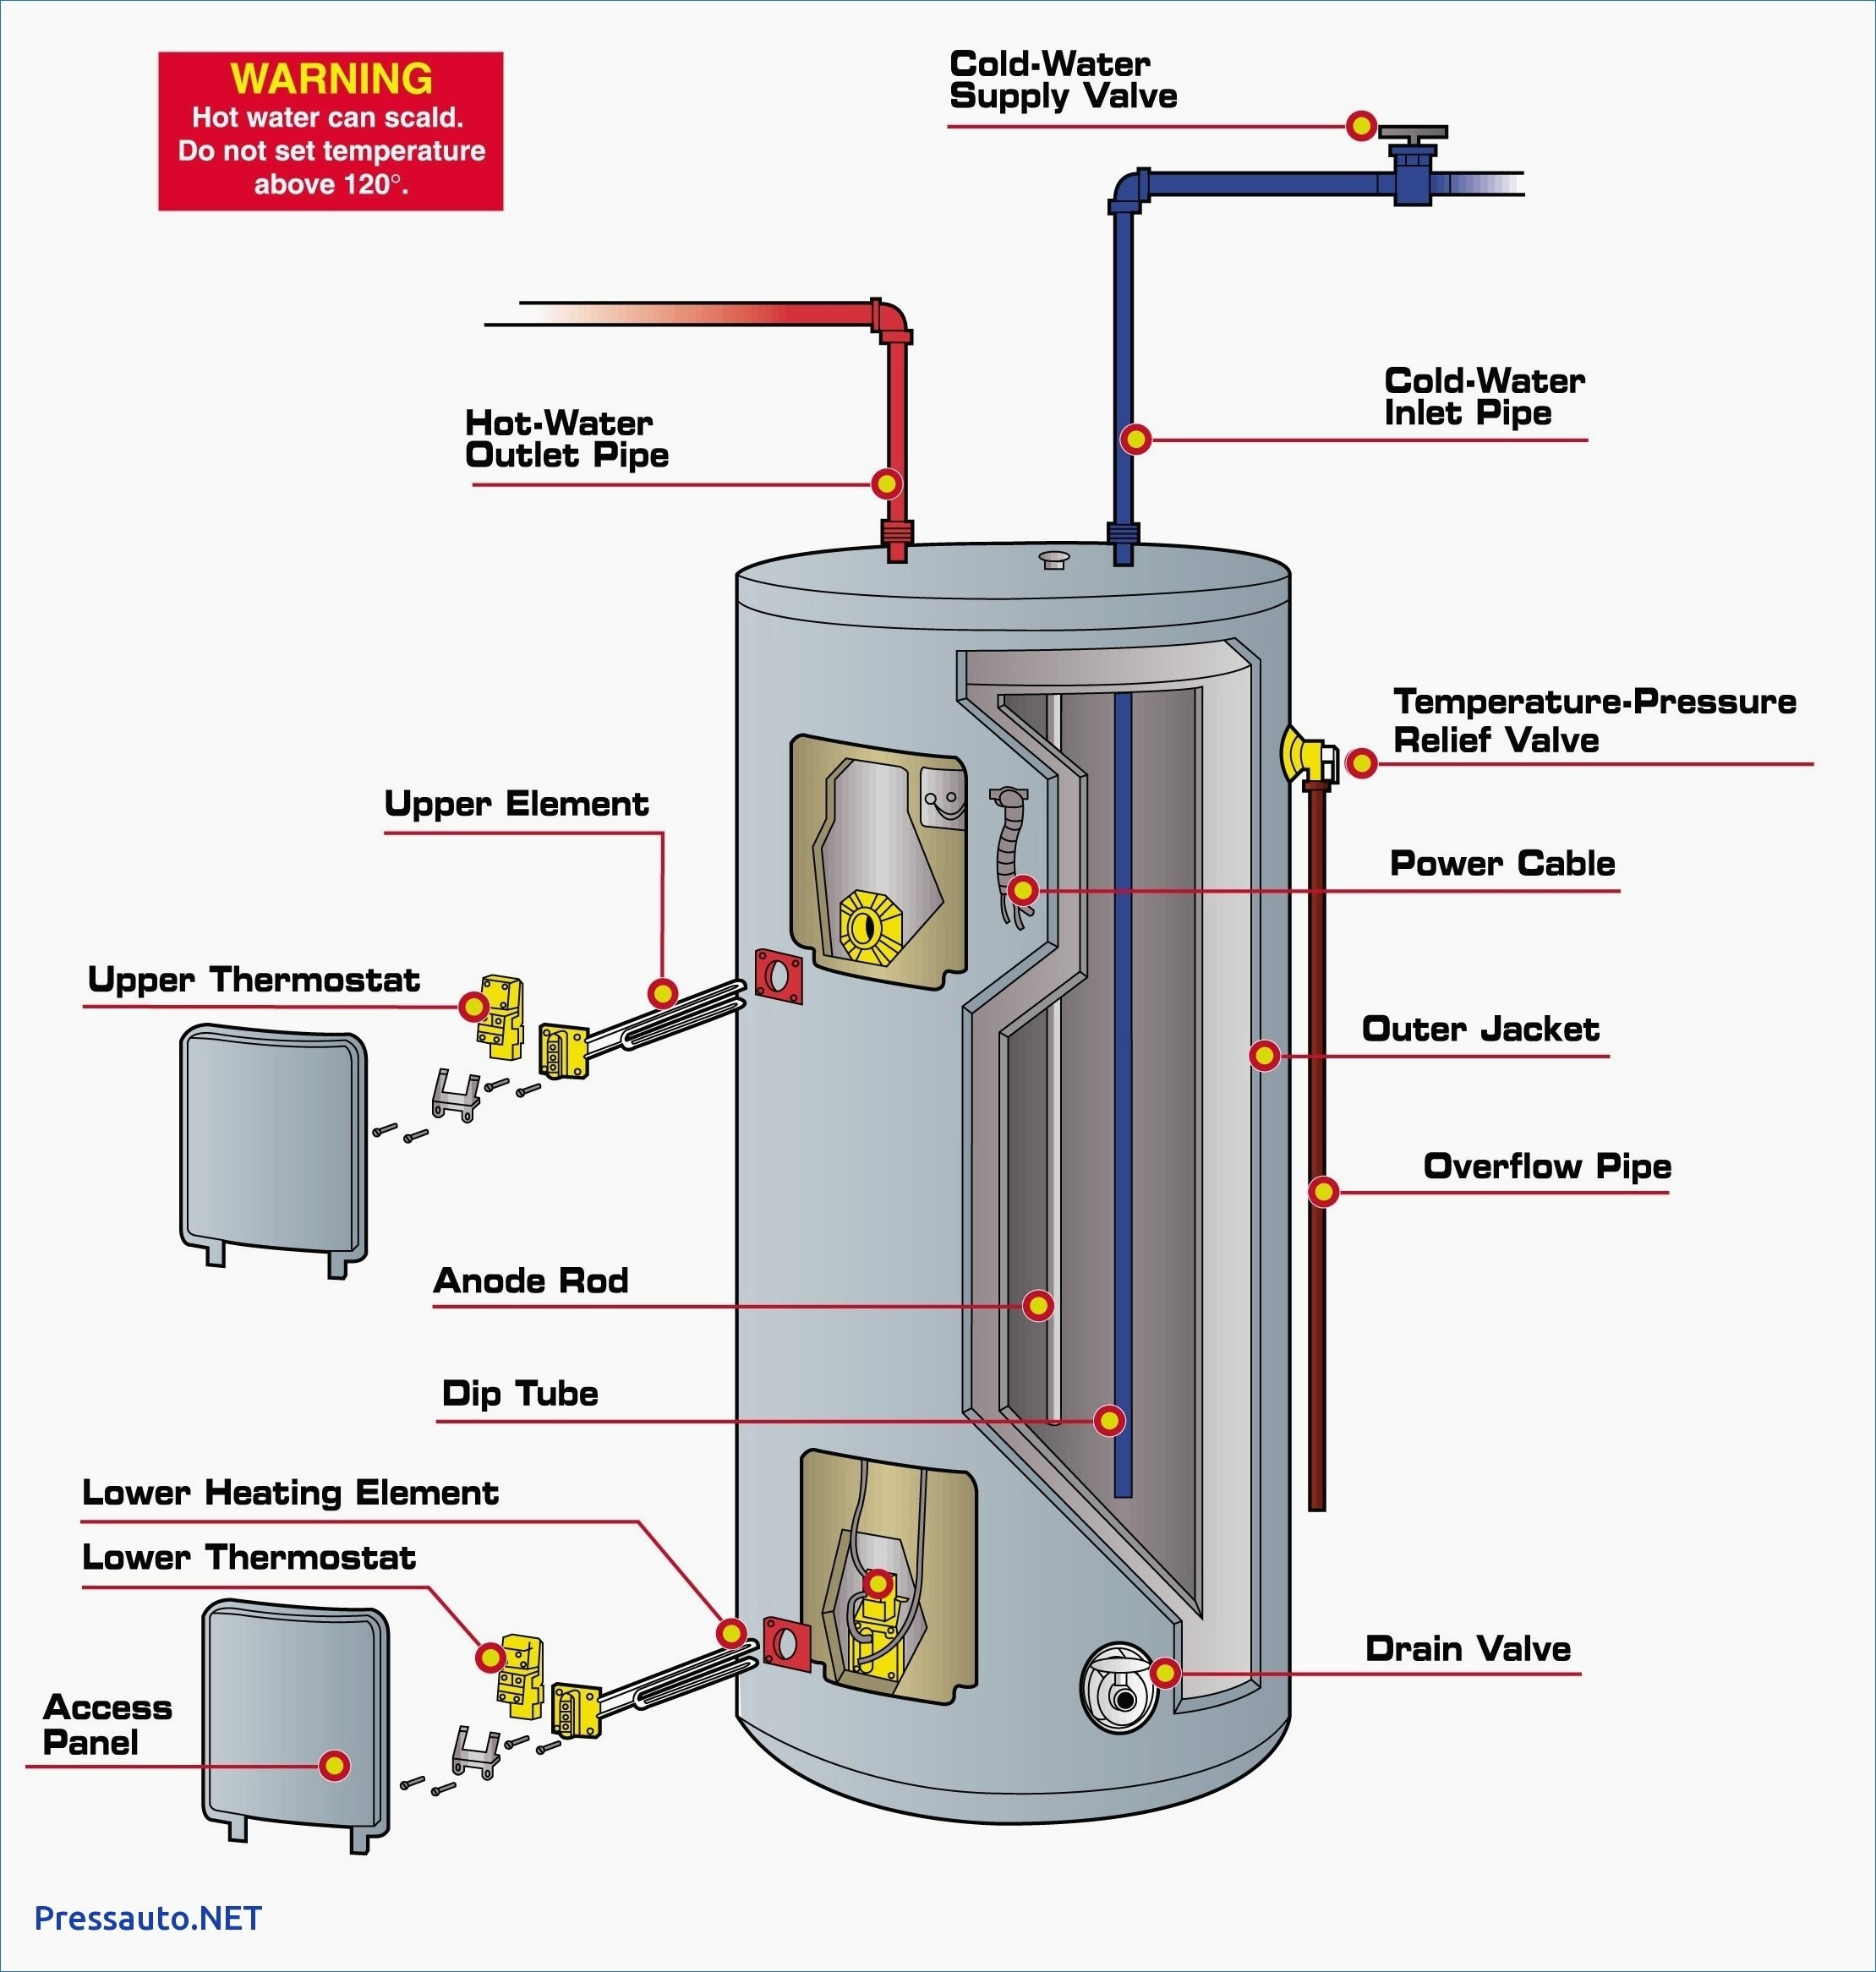 electric hot water tank wiring diagram Download-Wiring Diagram Electric Water Heater Fresh New Hot Water Heater Wiring Diagram Diagram 8-n